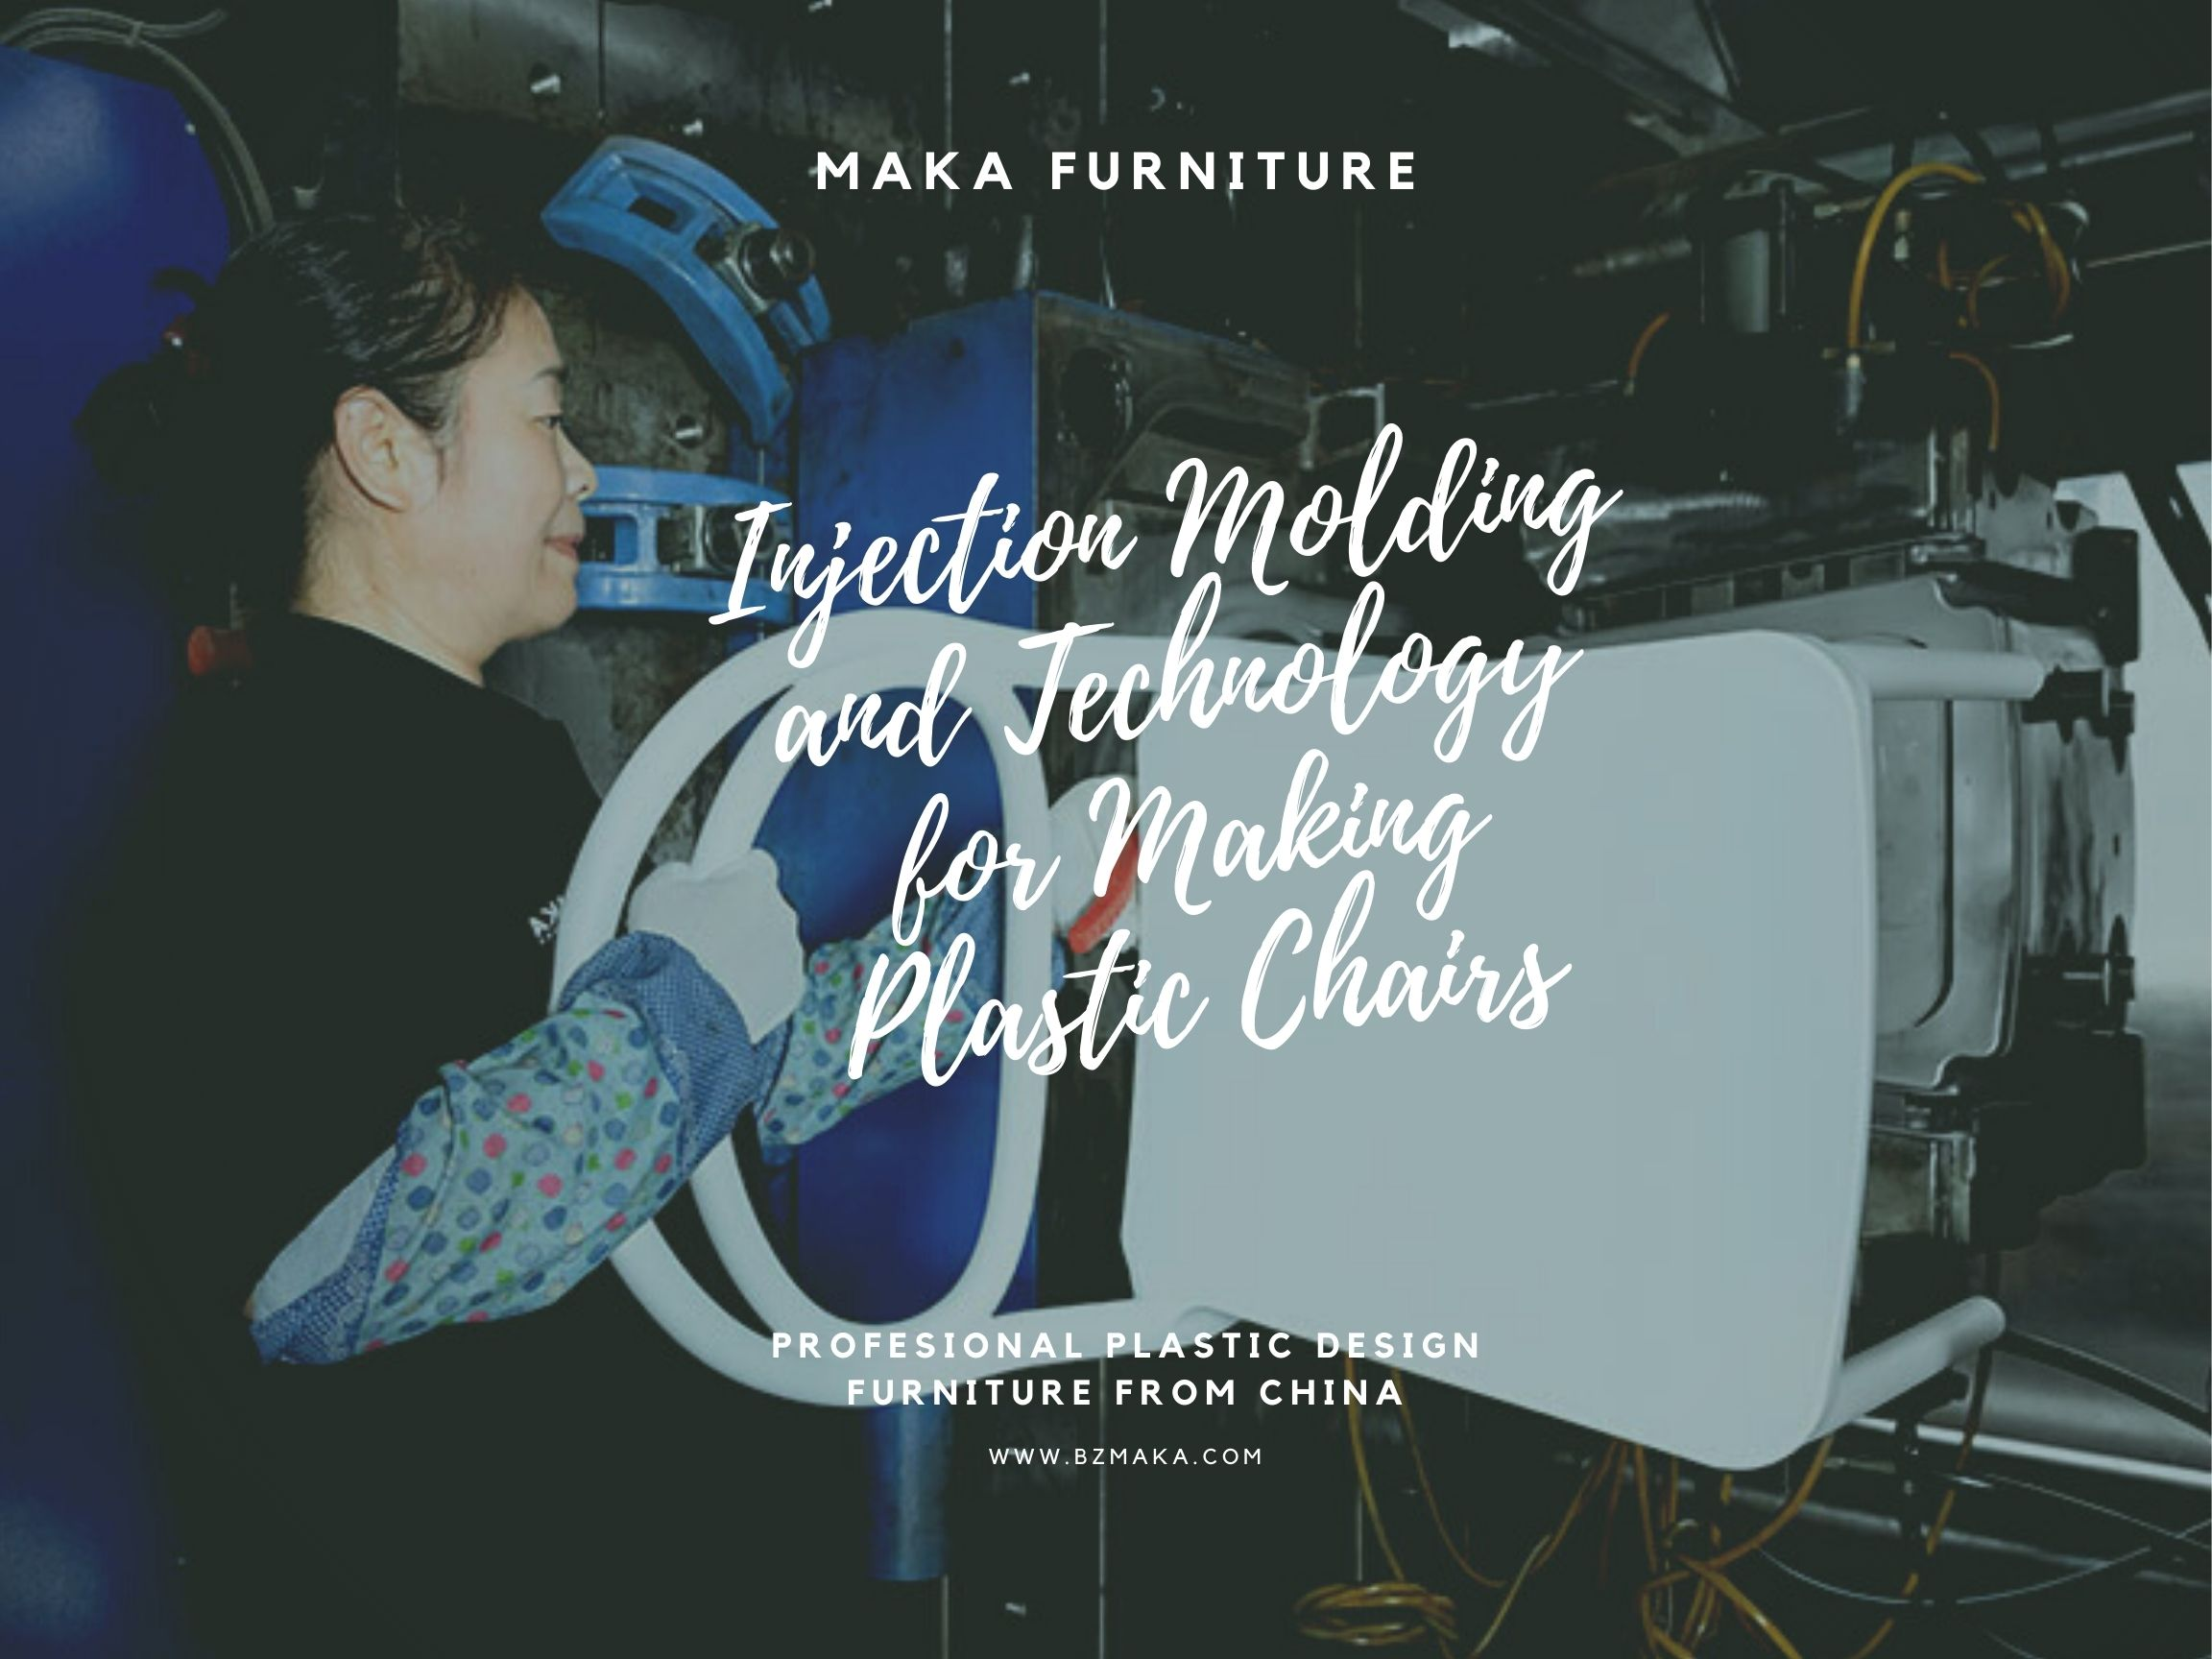 Injection Molding and Technology for Making Plastic Chairs